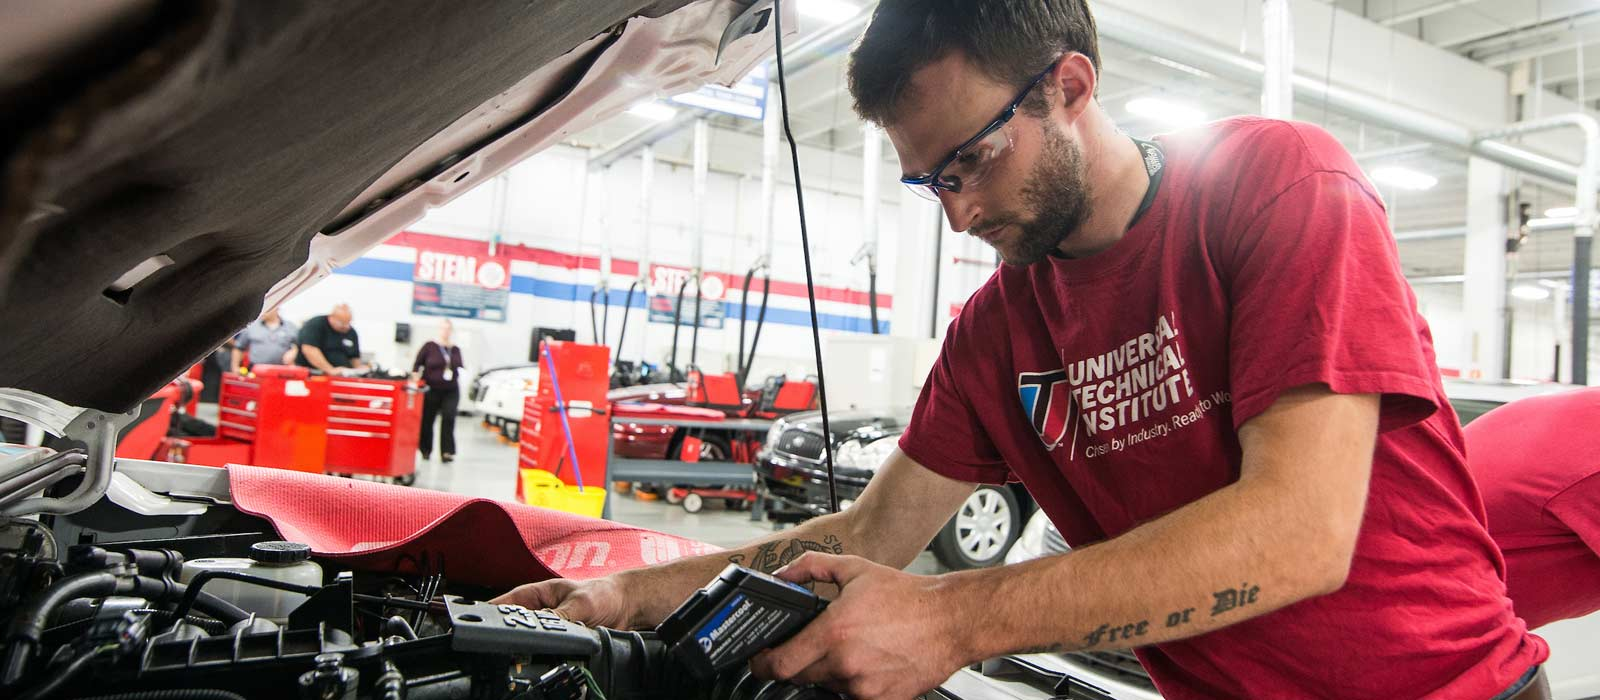 9 Important Questions to Answer Before Going to UTI